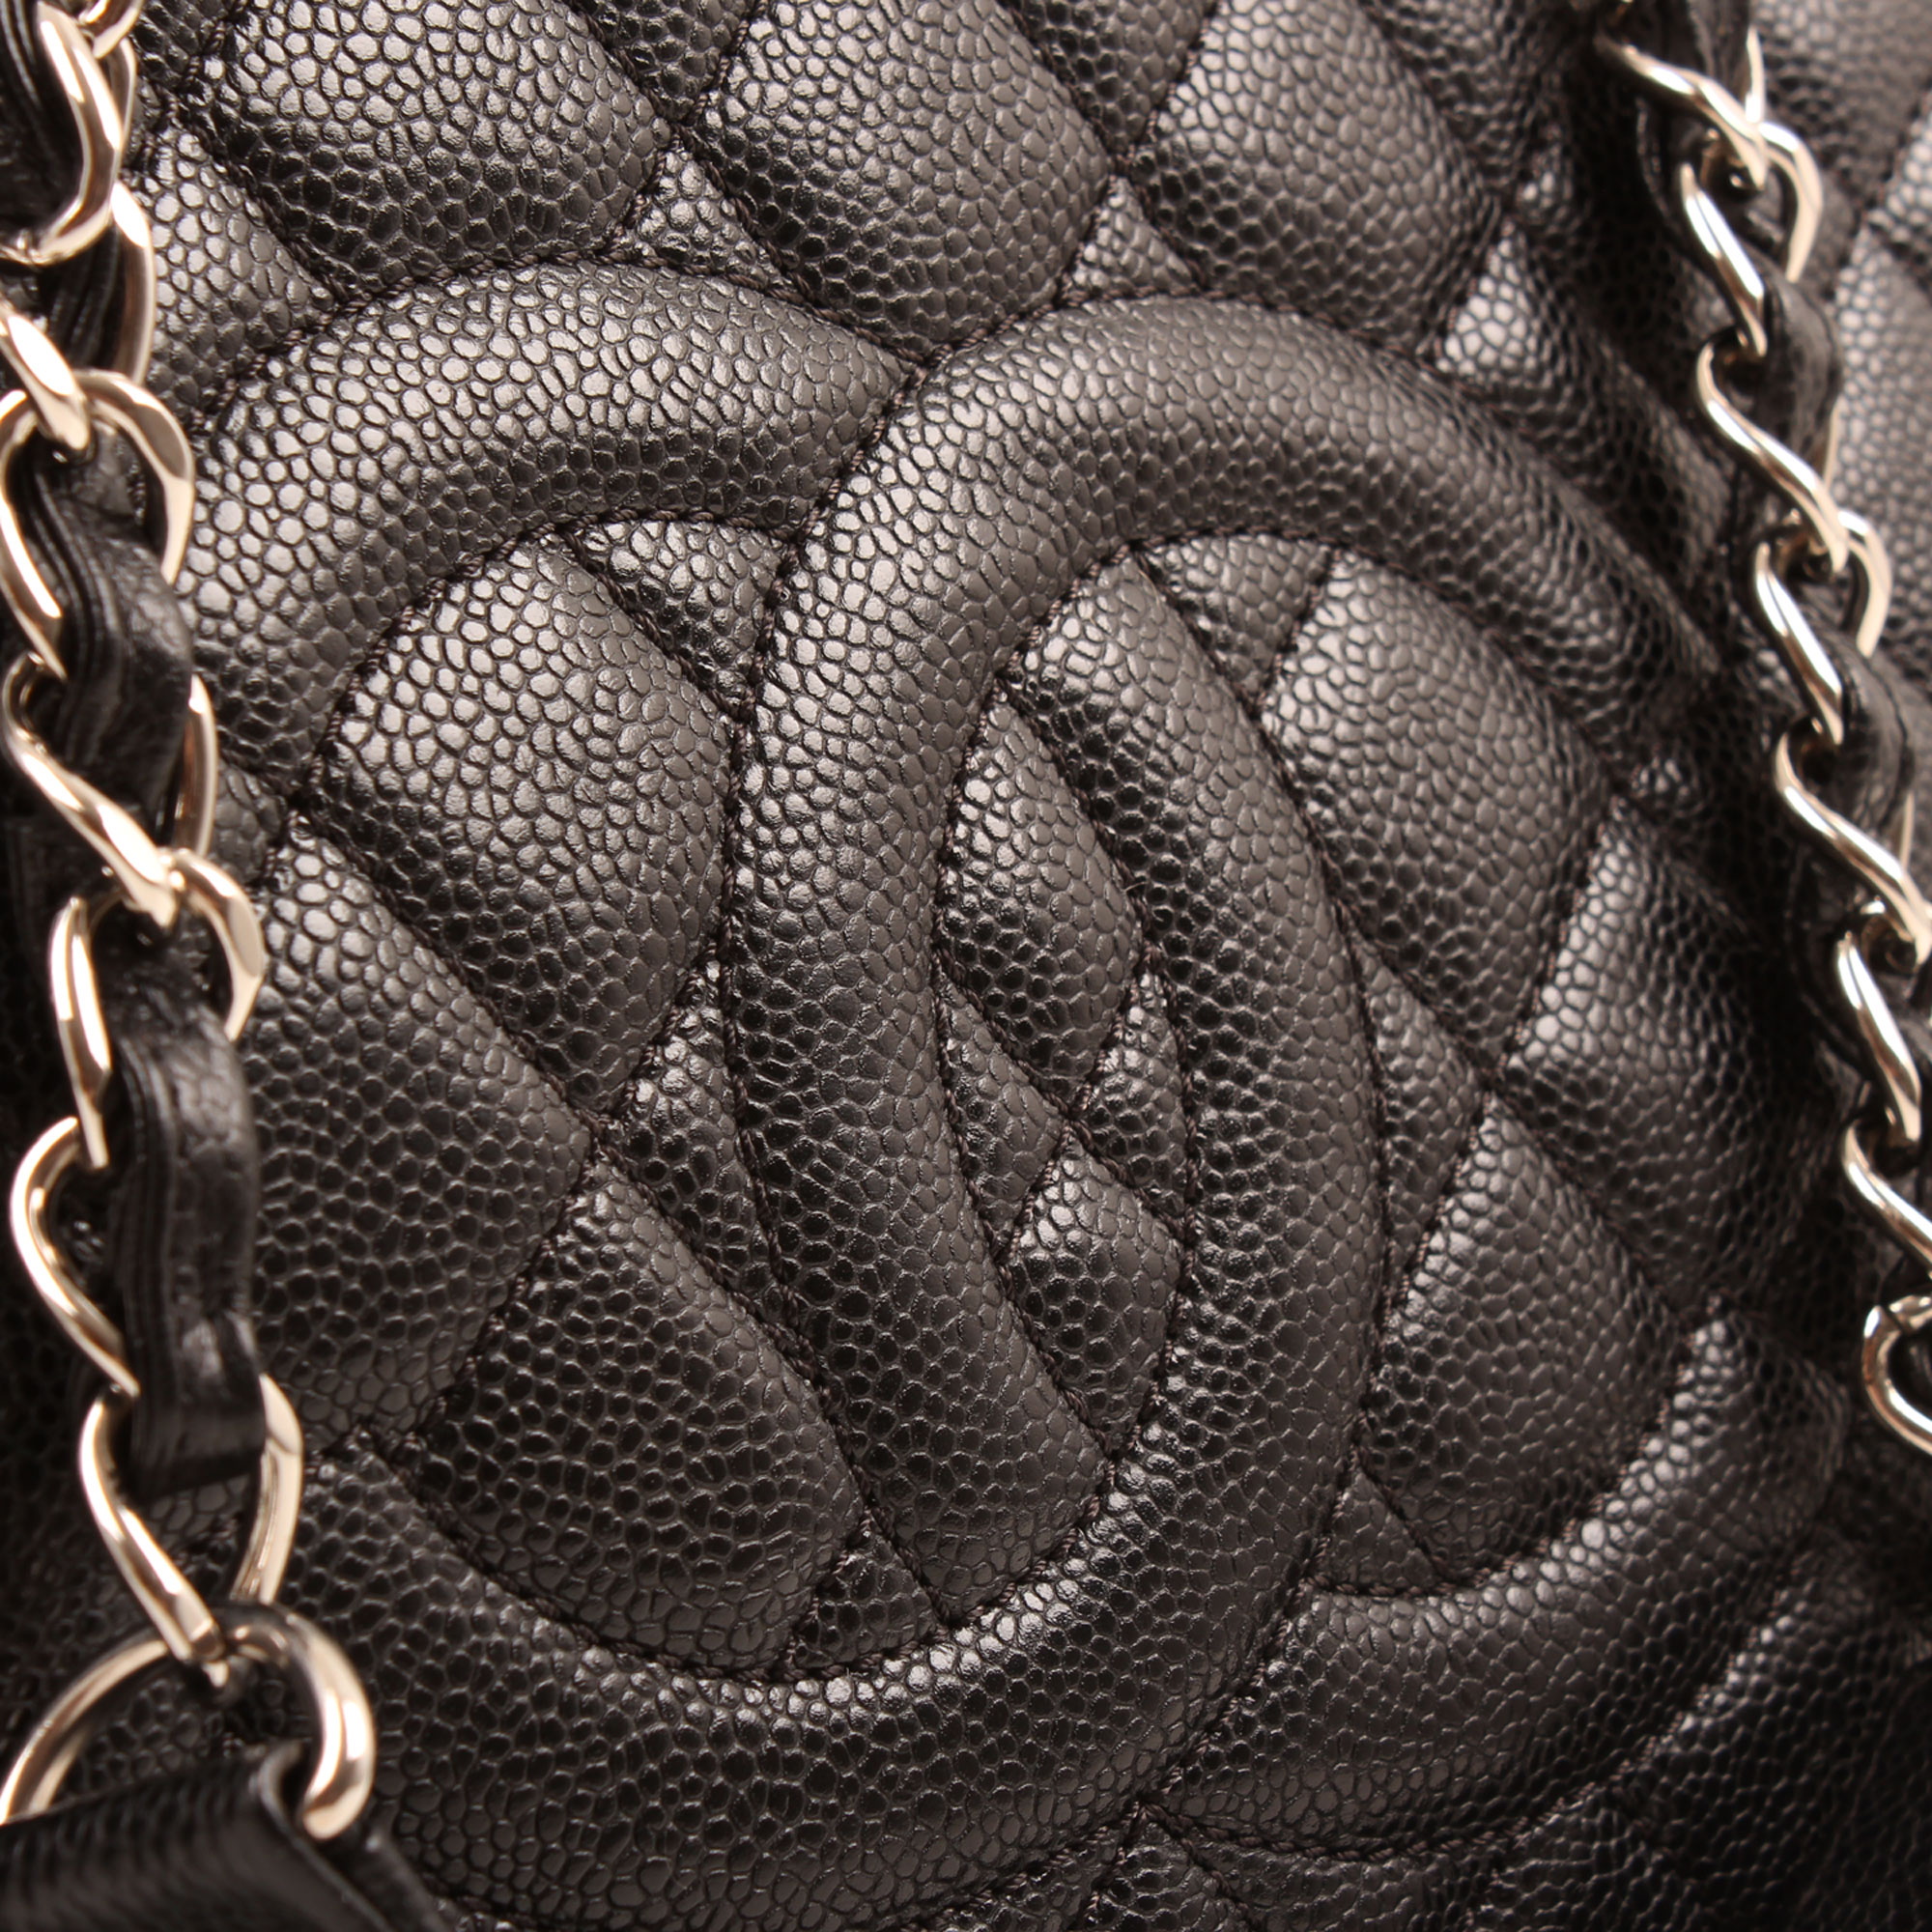 Leather detail image of chanel grand shopping tote bag black caviar leather